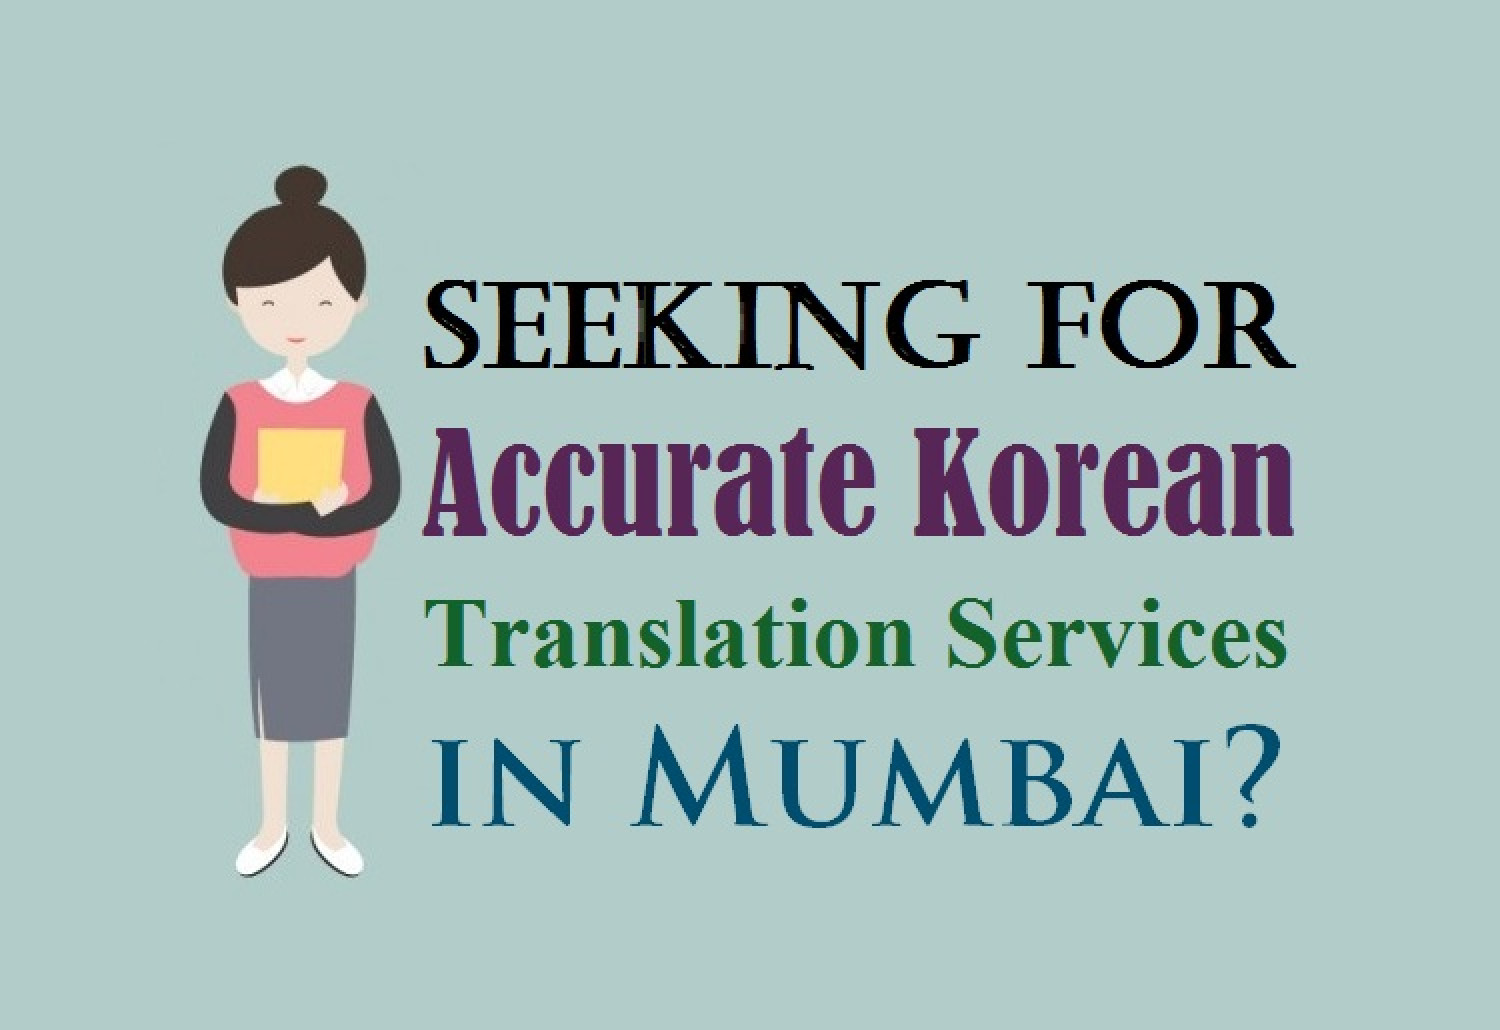 Seeking For Accurate Korean Translation Services in Mumbai? Infographic